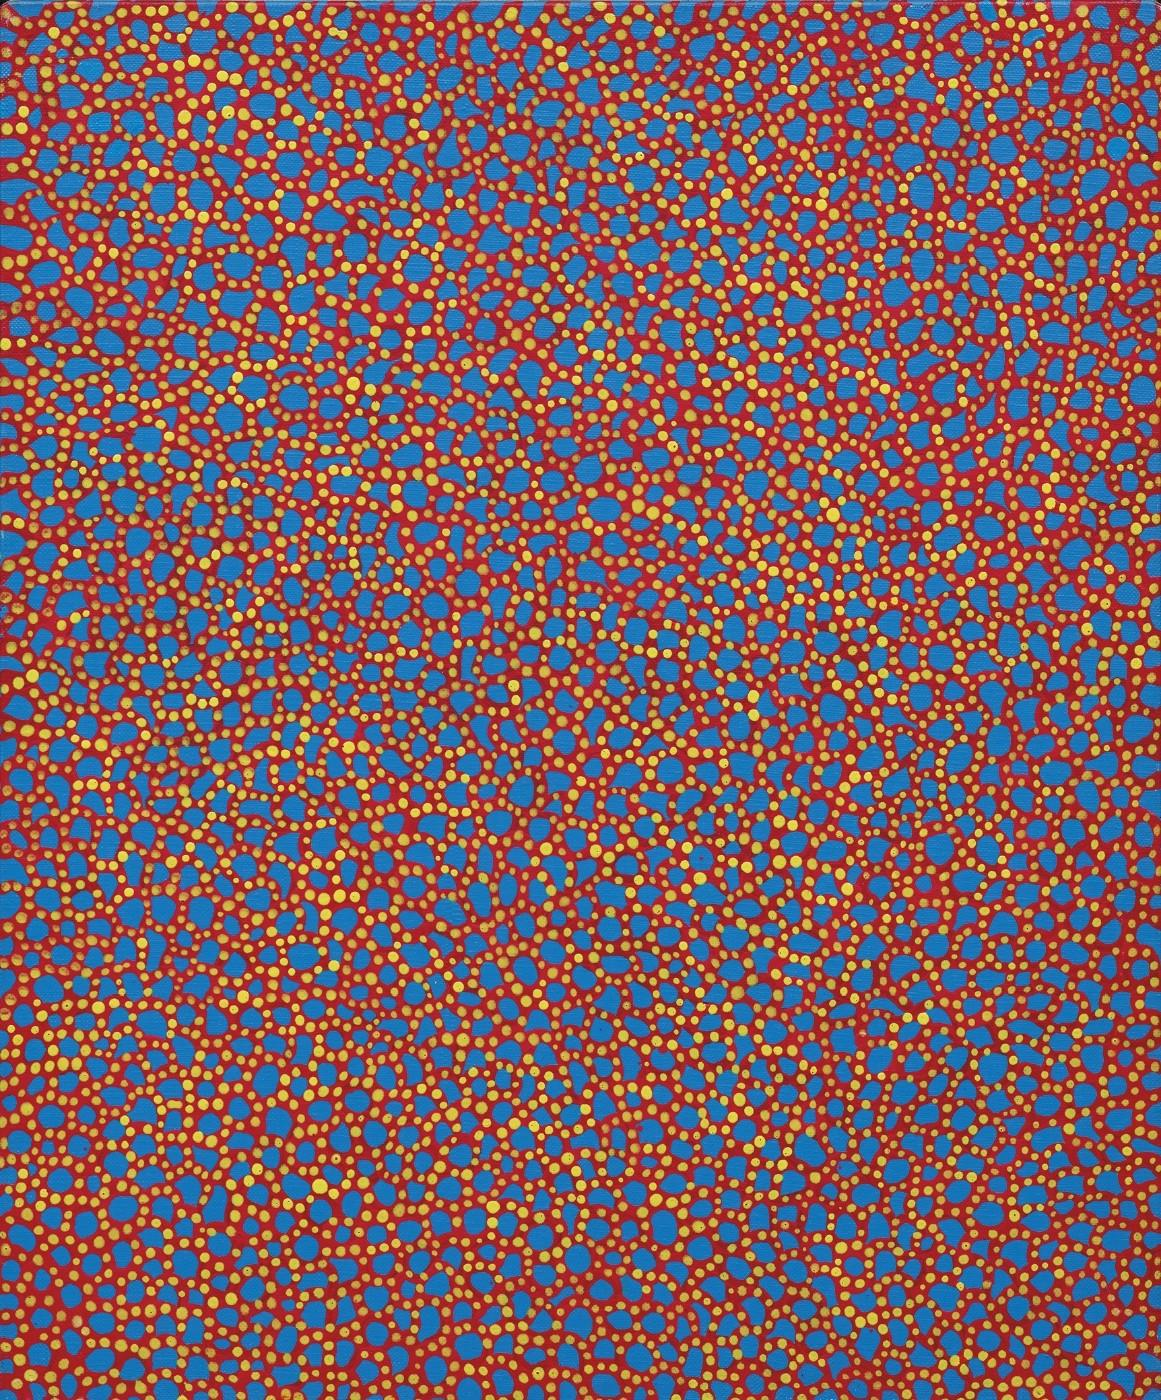 Yayoi Kusama, The Thames in the Morning, 1988